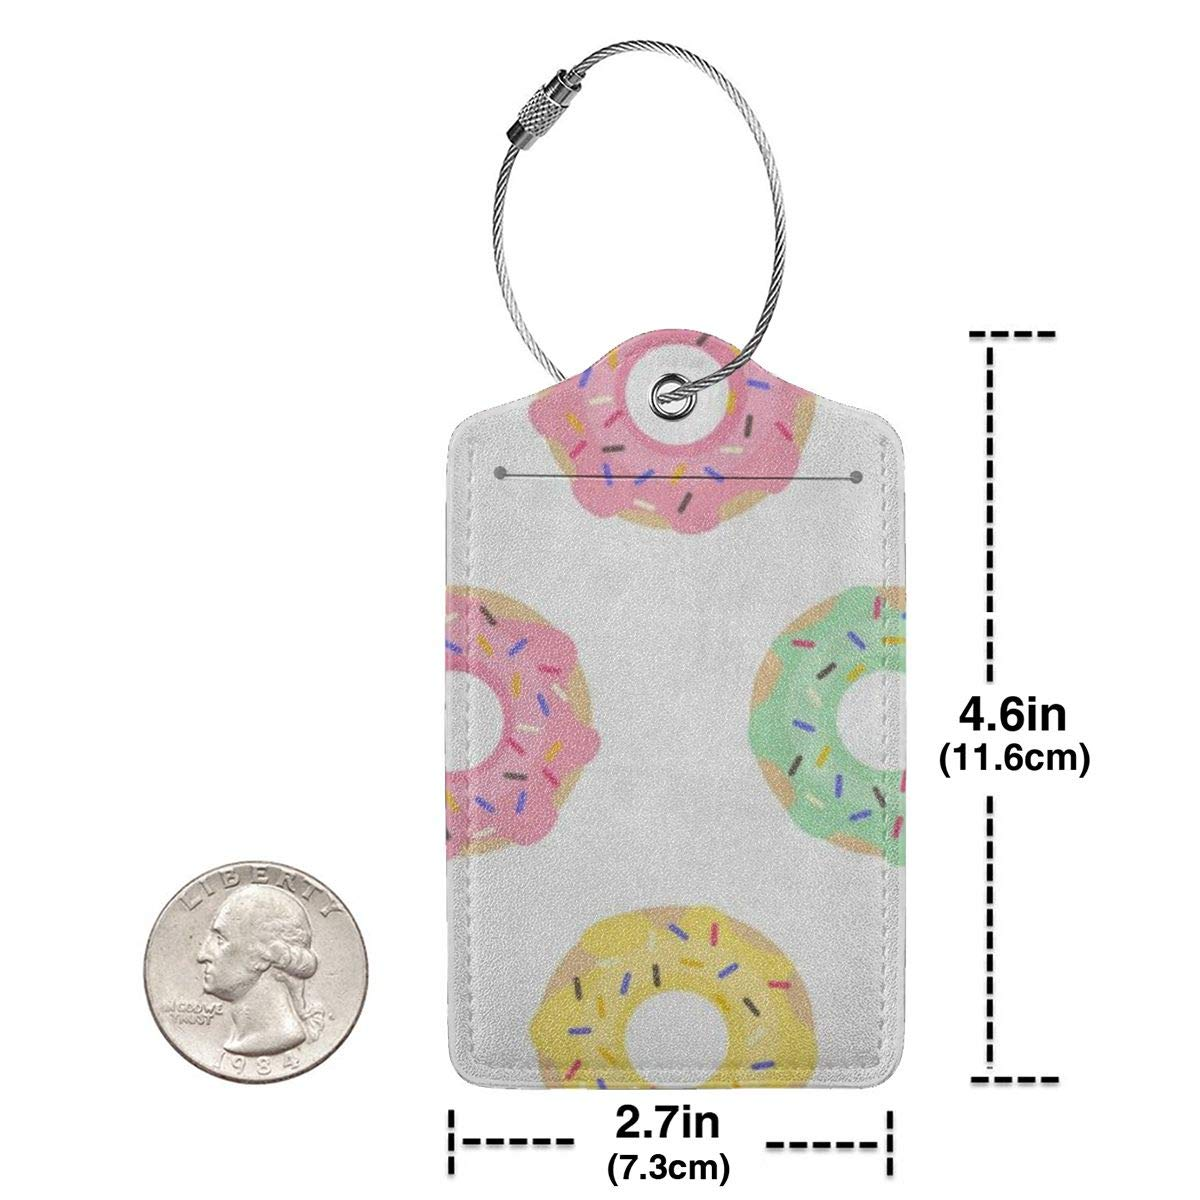 Cute Donuts Leather Luggage Tags Personalized Suitcase Tag With Adjustable Strap